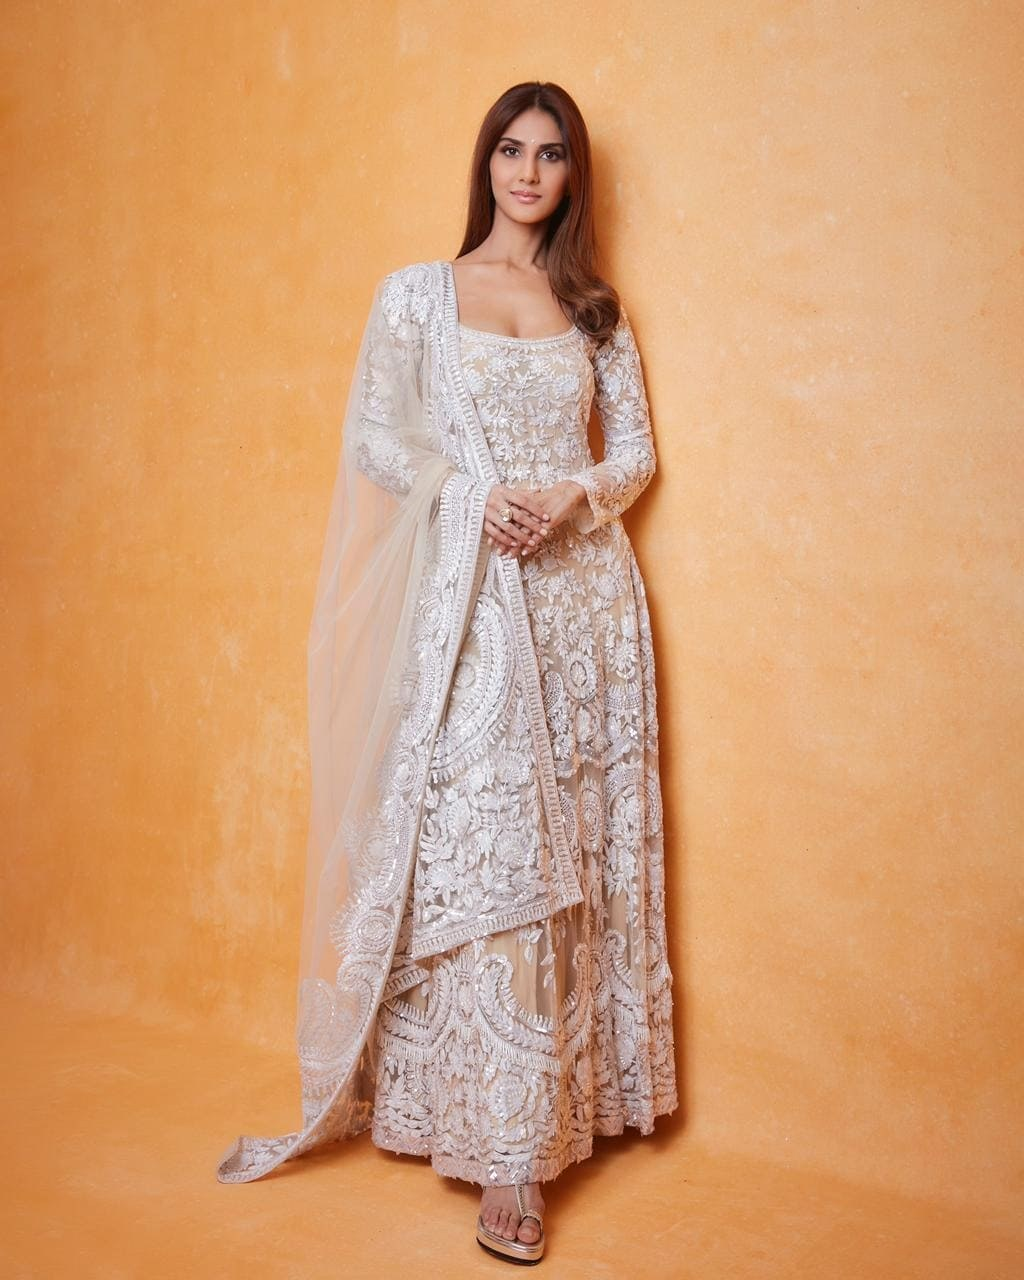 Vaani kapoor in white kalidaar by manish malhotra for _Bell Bottom_ trailer launch-3